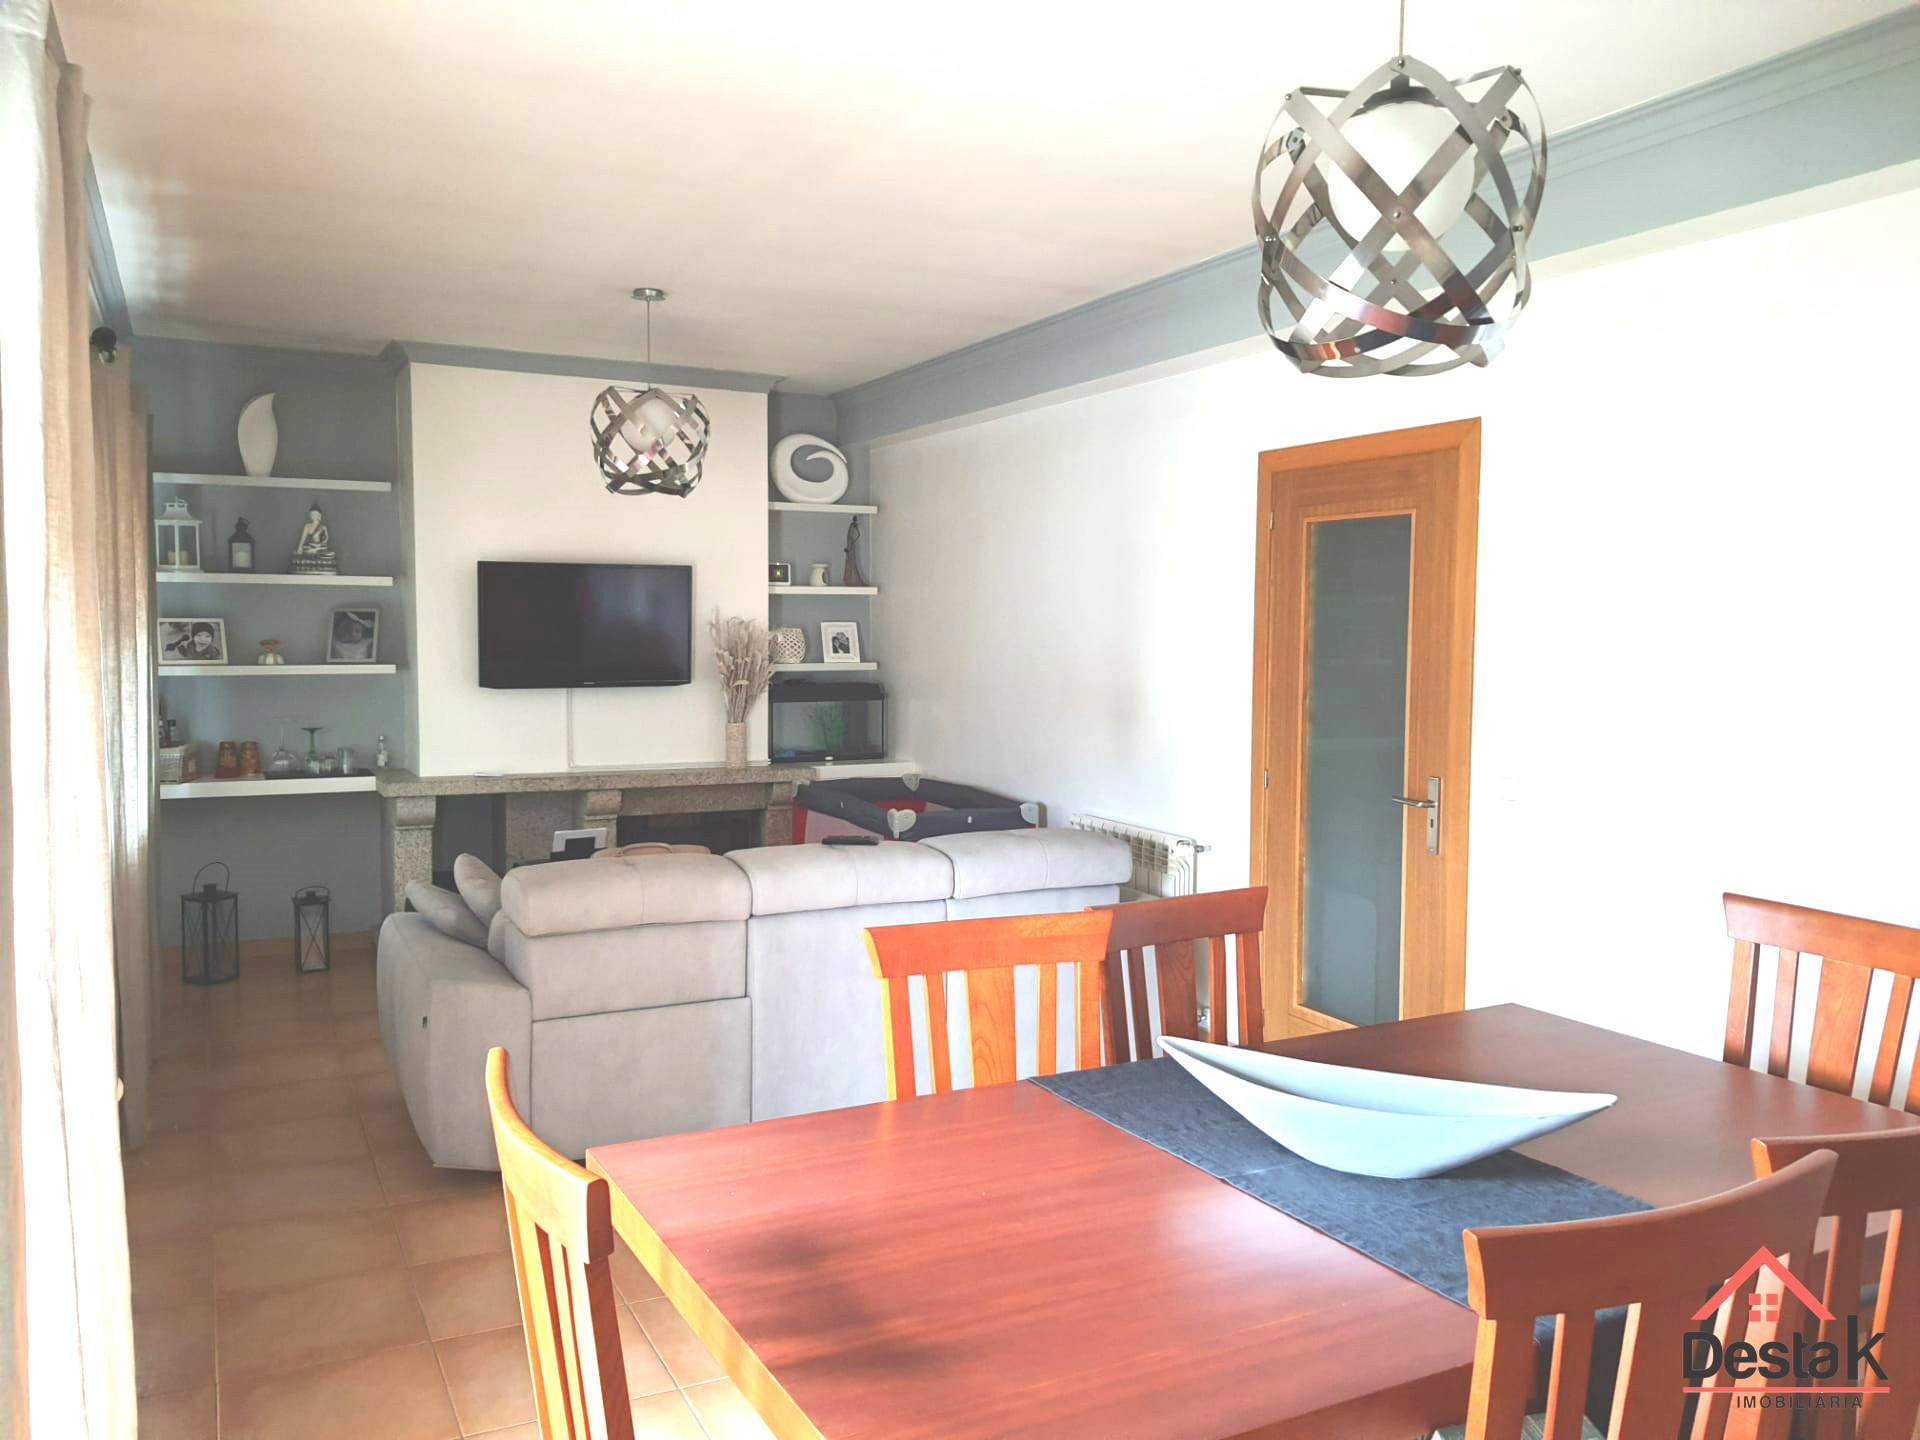 3 bedroom apartment in excellent condition.